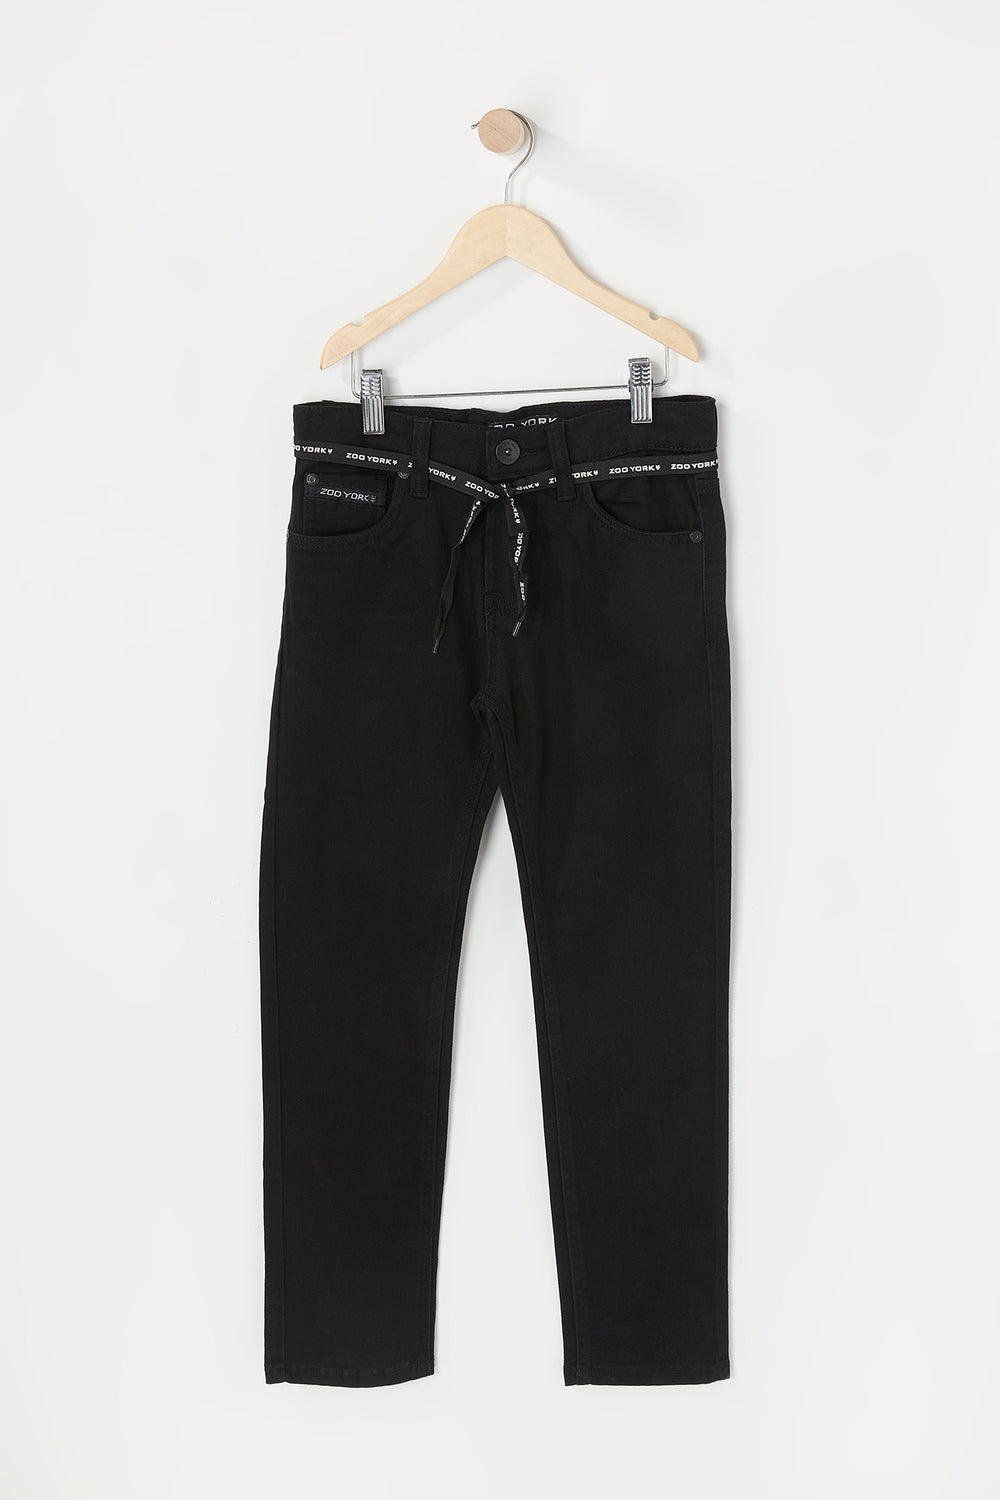 Zoo York Youth Skinny Jeans Black